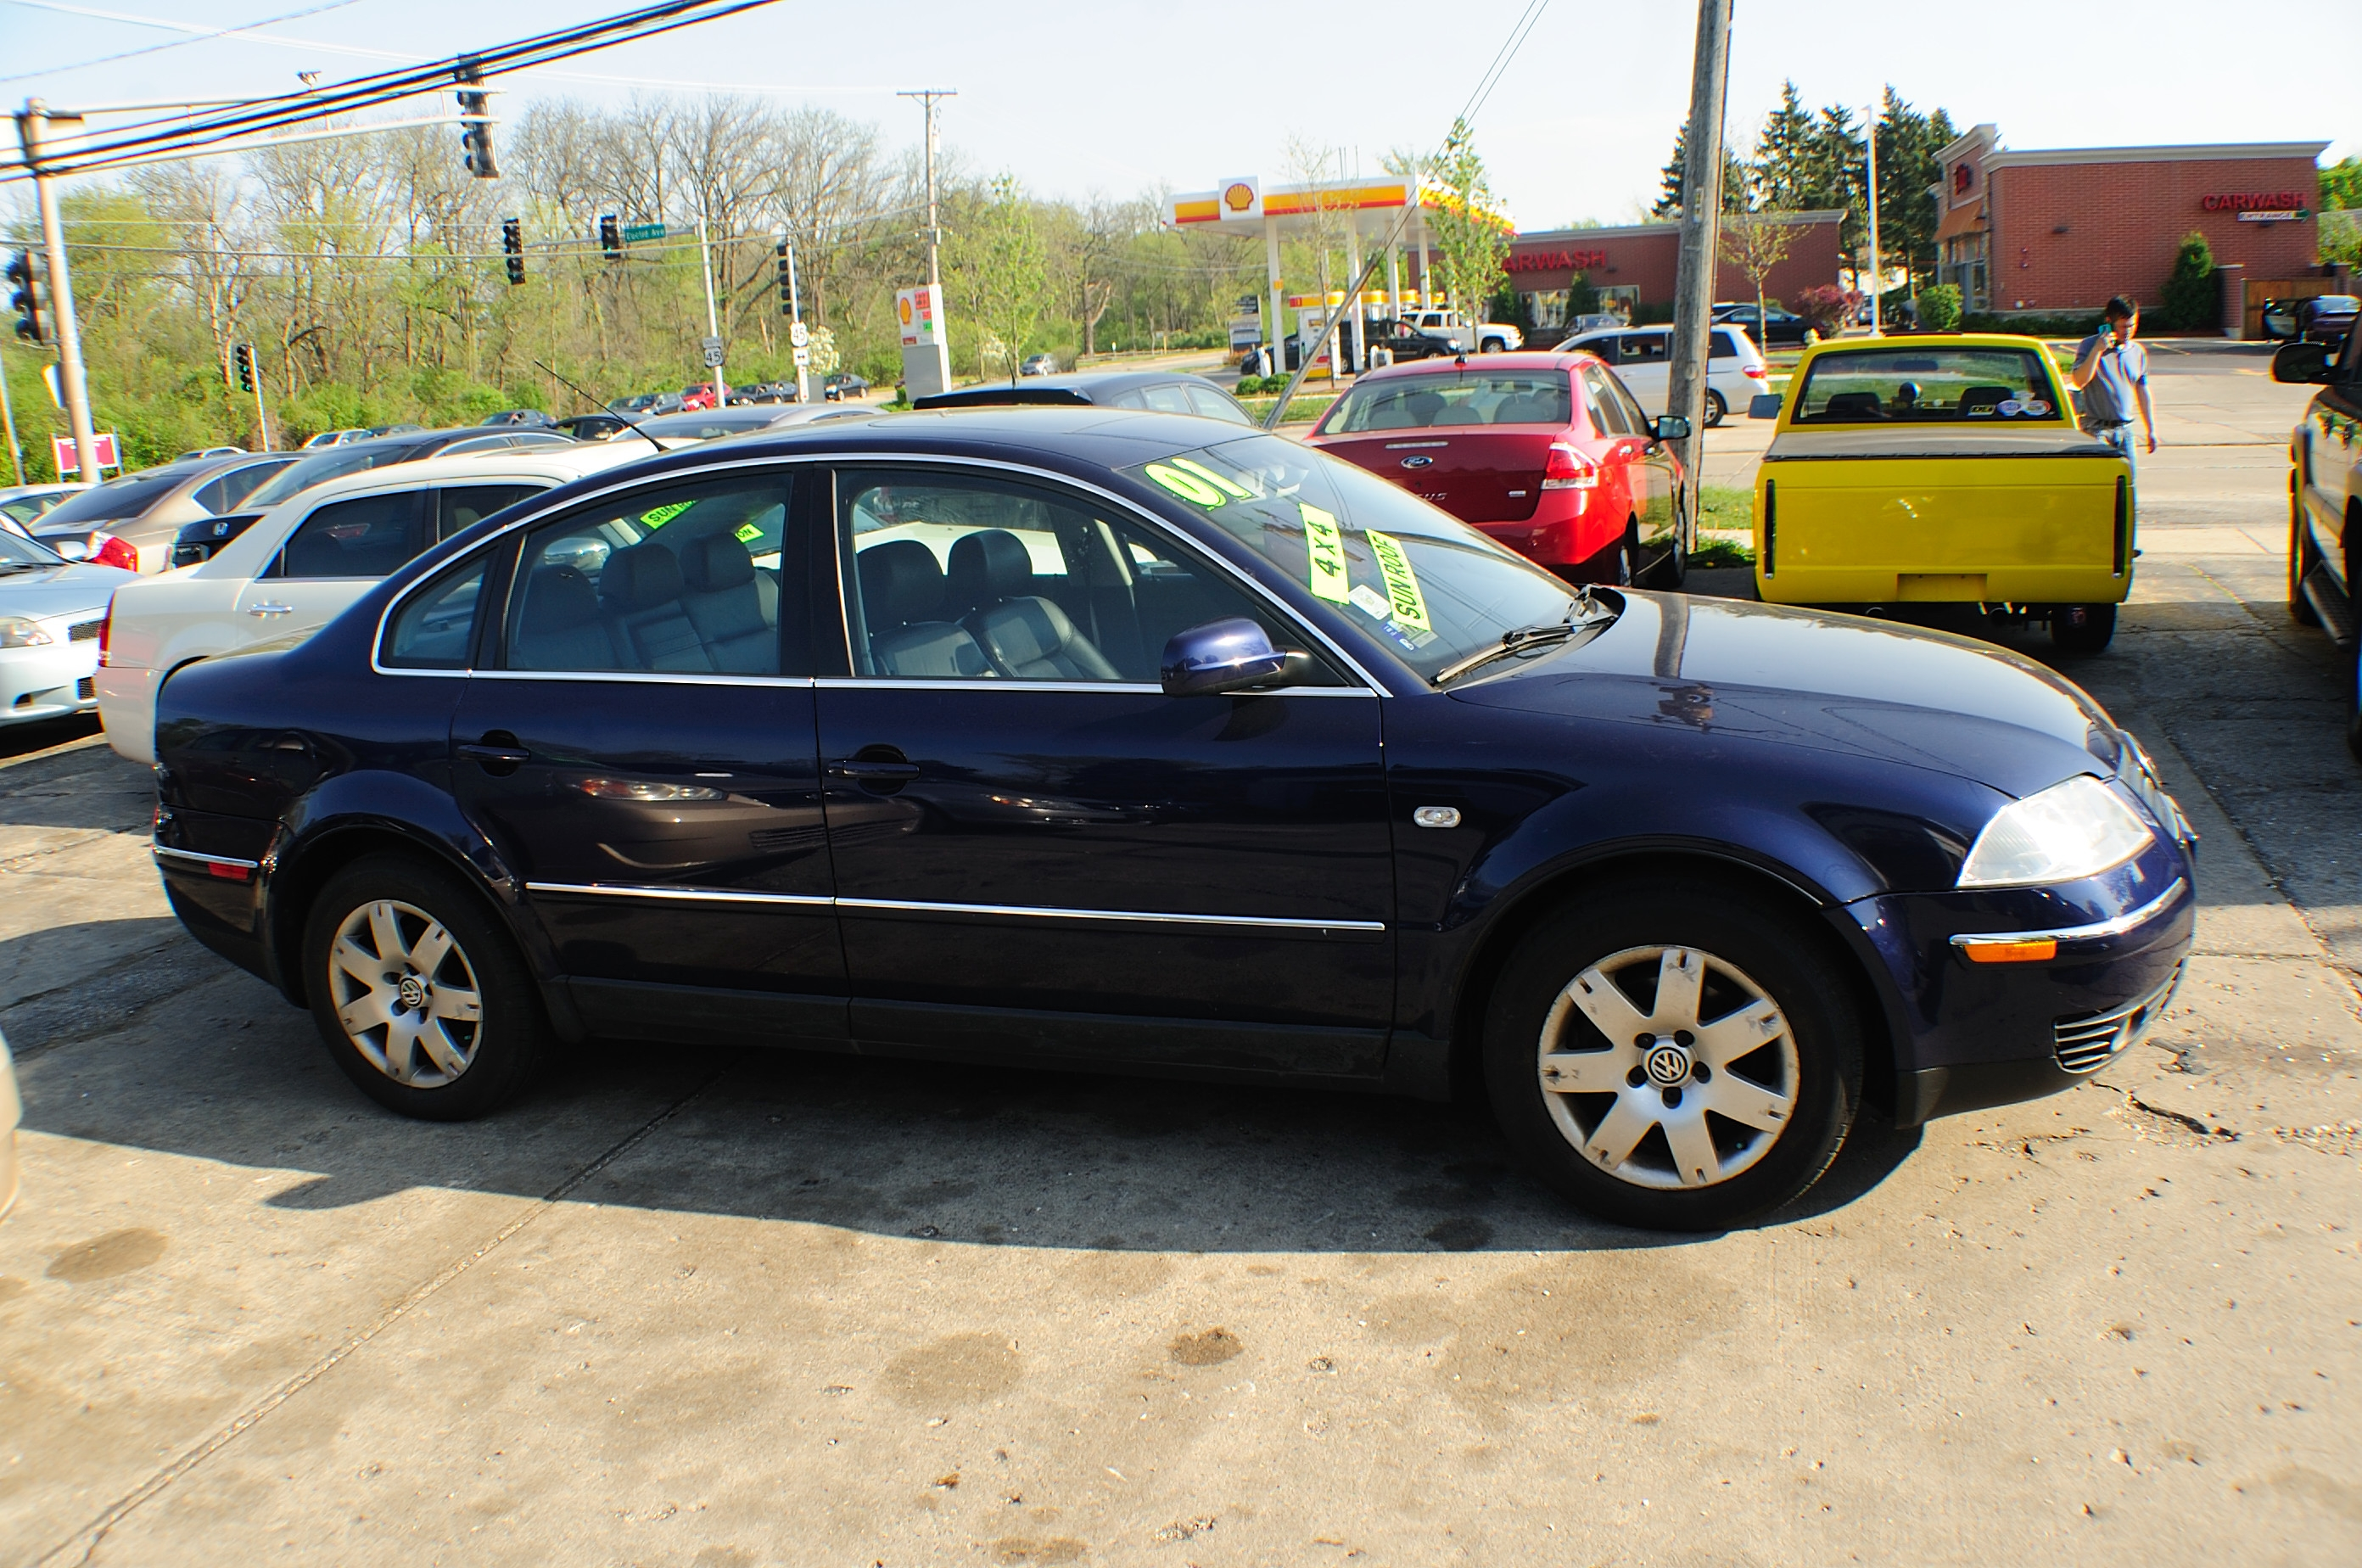 2001 Volkswagen Passat Blue Used Sedan car sale Downers Grove Carpentersville Cicero